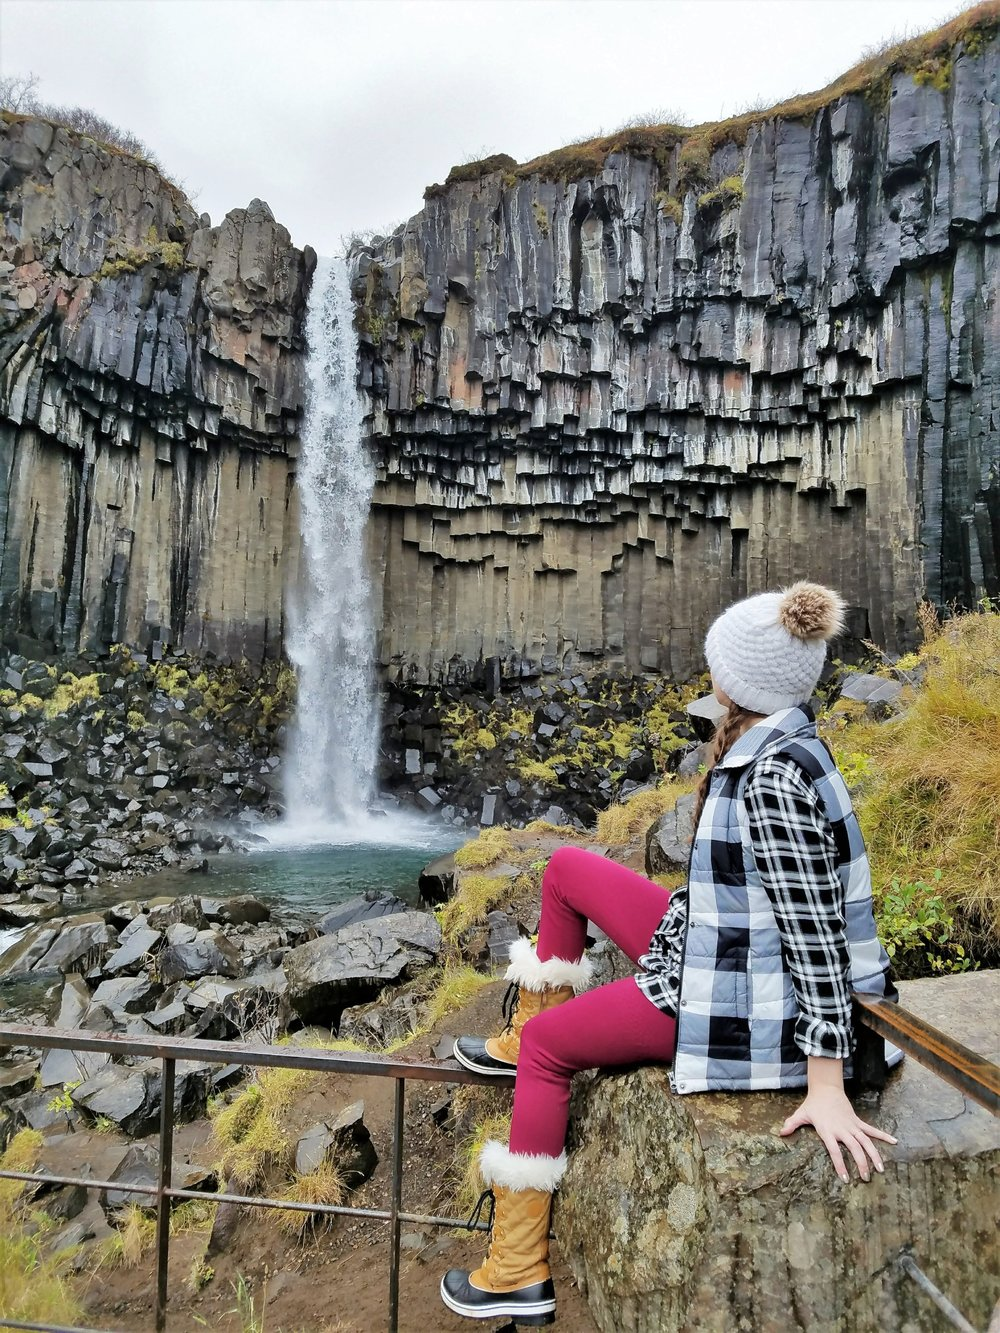 Iceland   Iceland travel   Europe travel   See in Iceland   Do in Iceland   Iceland tips   Iceland sites   Iceland waterfalls   Iceland guide   Waterfalls   Svartifoss